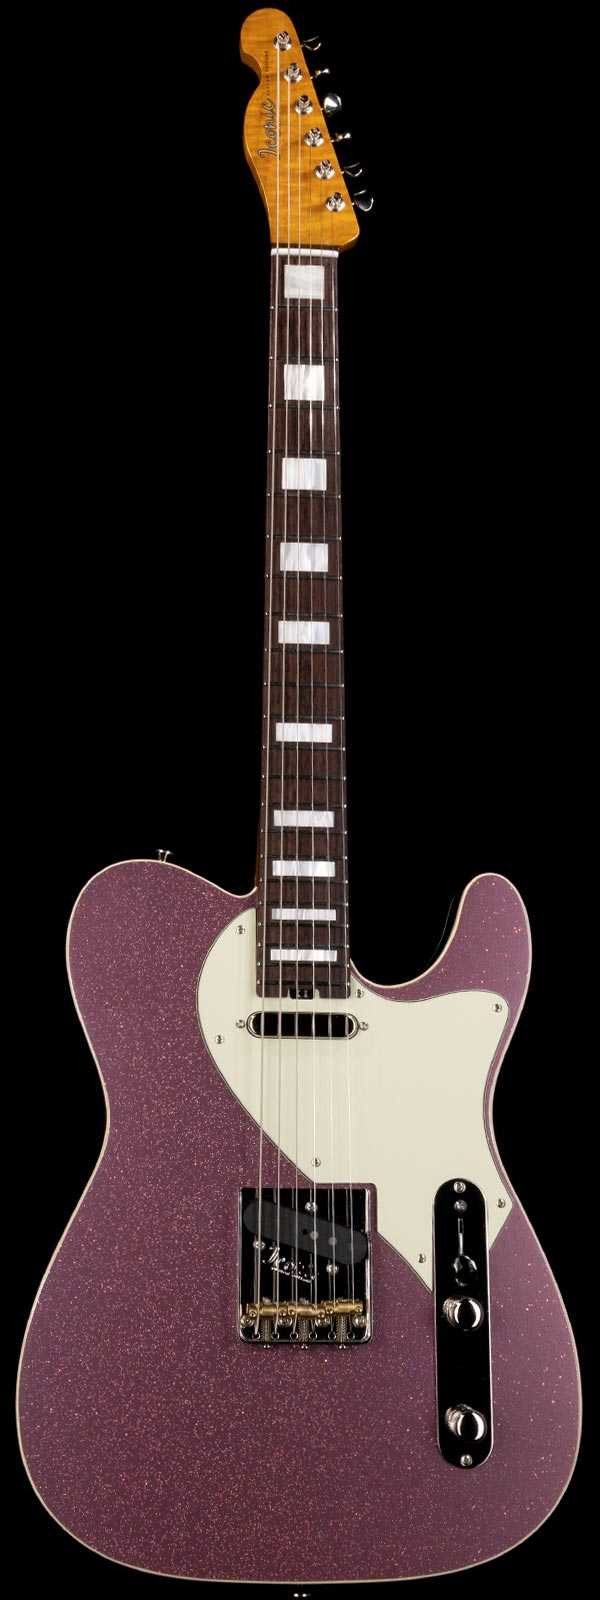 Iconic Vintage Modern T Deluxe 5A Flame Maple Neck Burgundy Mist